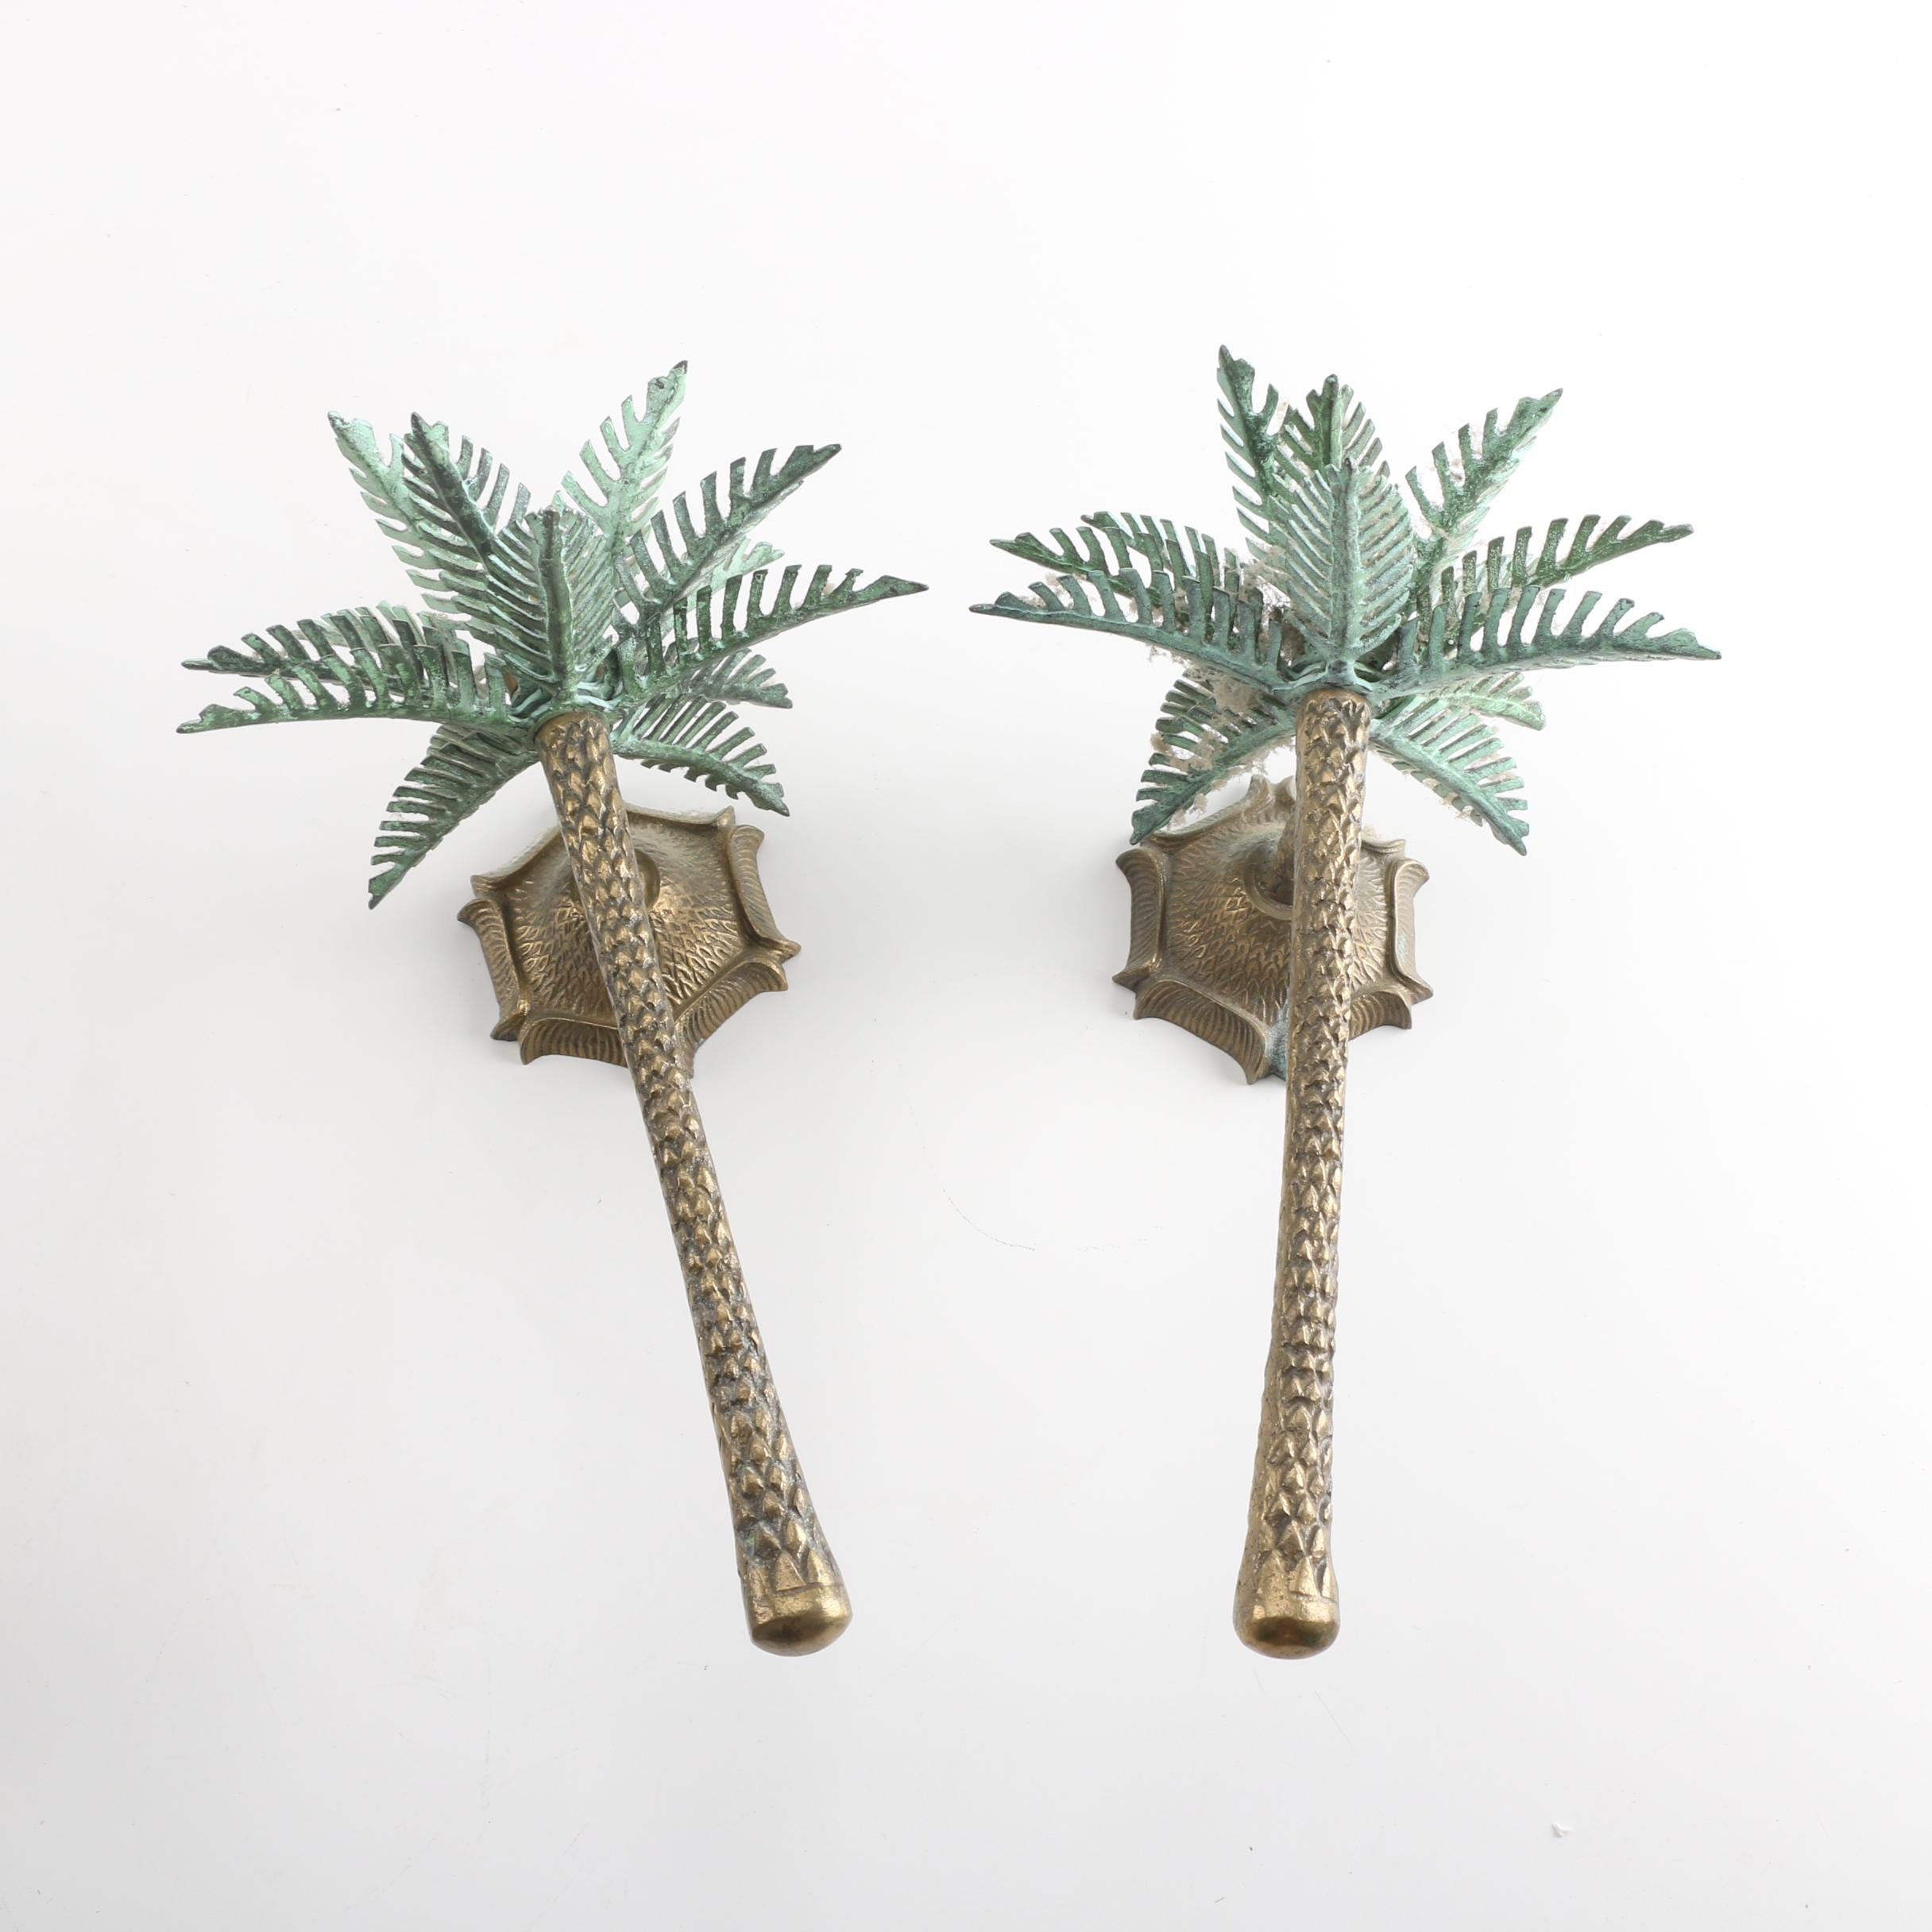 Metal Candle Sconces with Palm Trees